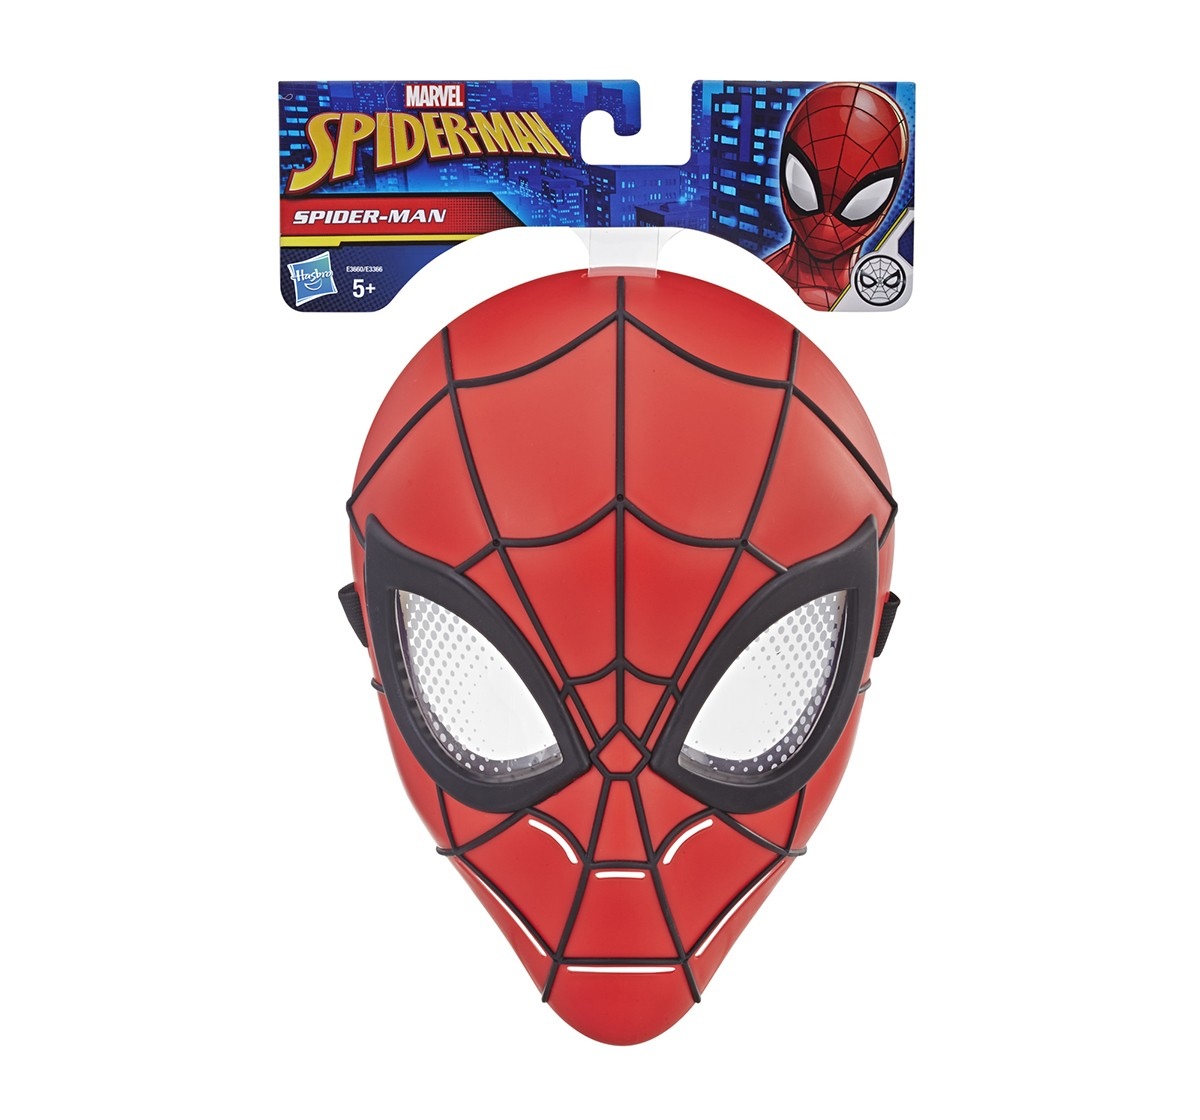 Marvel Spider-Man Hero Mask Action Figures for BOYS age 5Y+